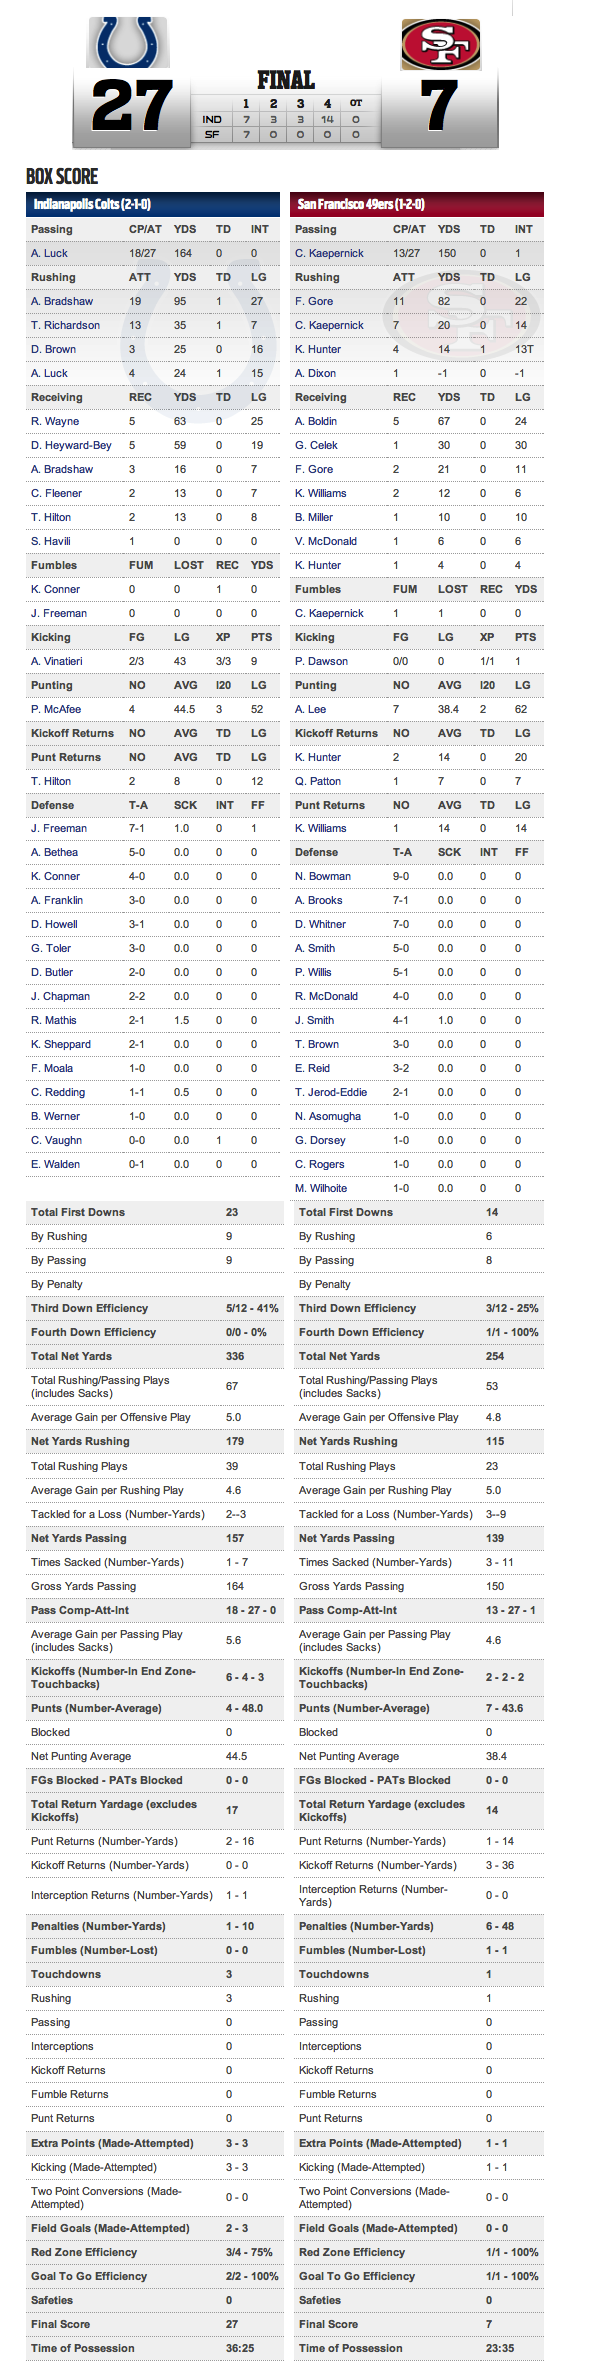 box score courtesy of nfl.com